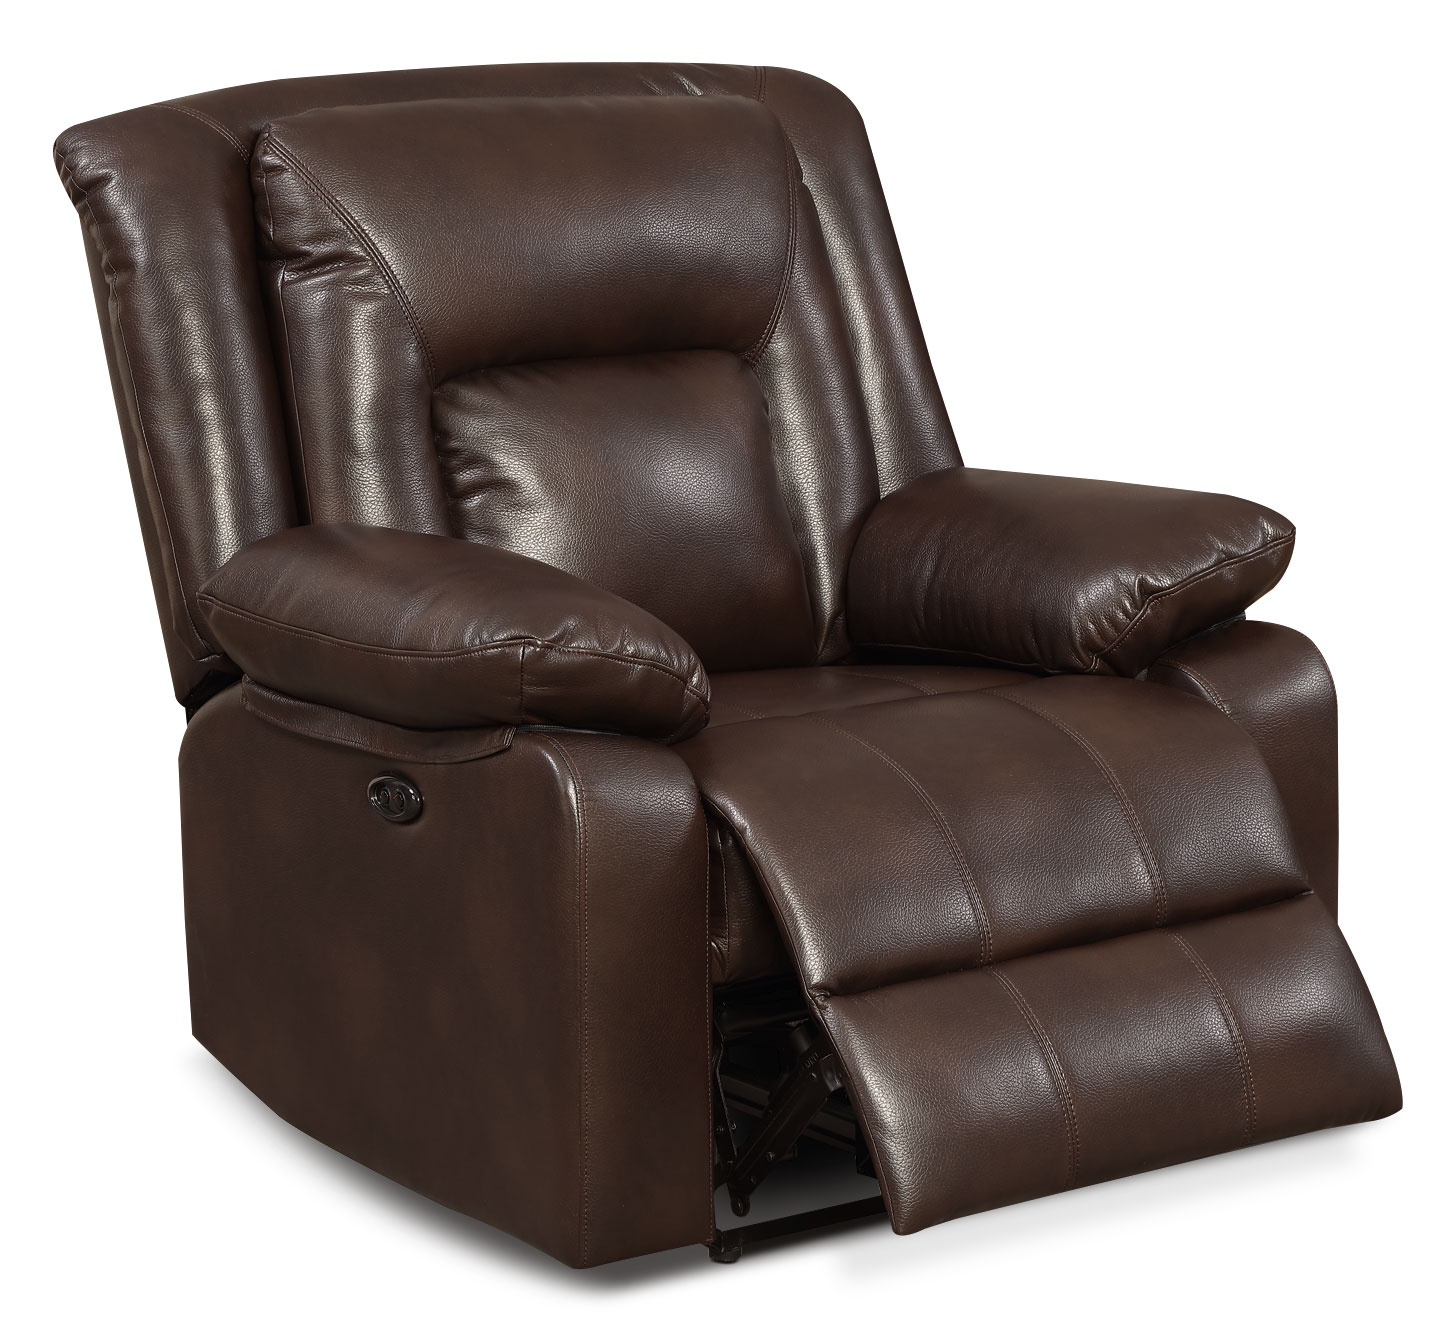 Blane Leather-Look Fabric Power Reclining Chair – Brown